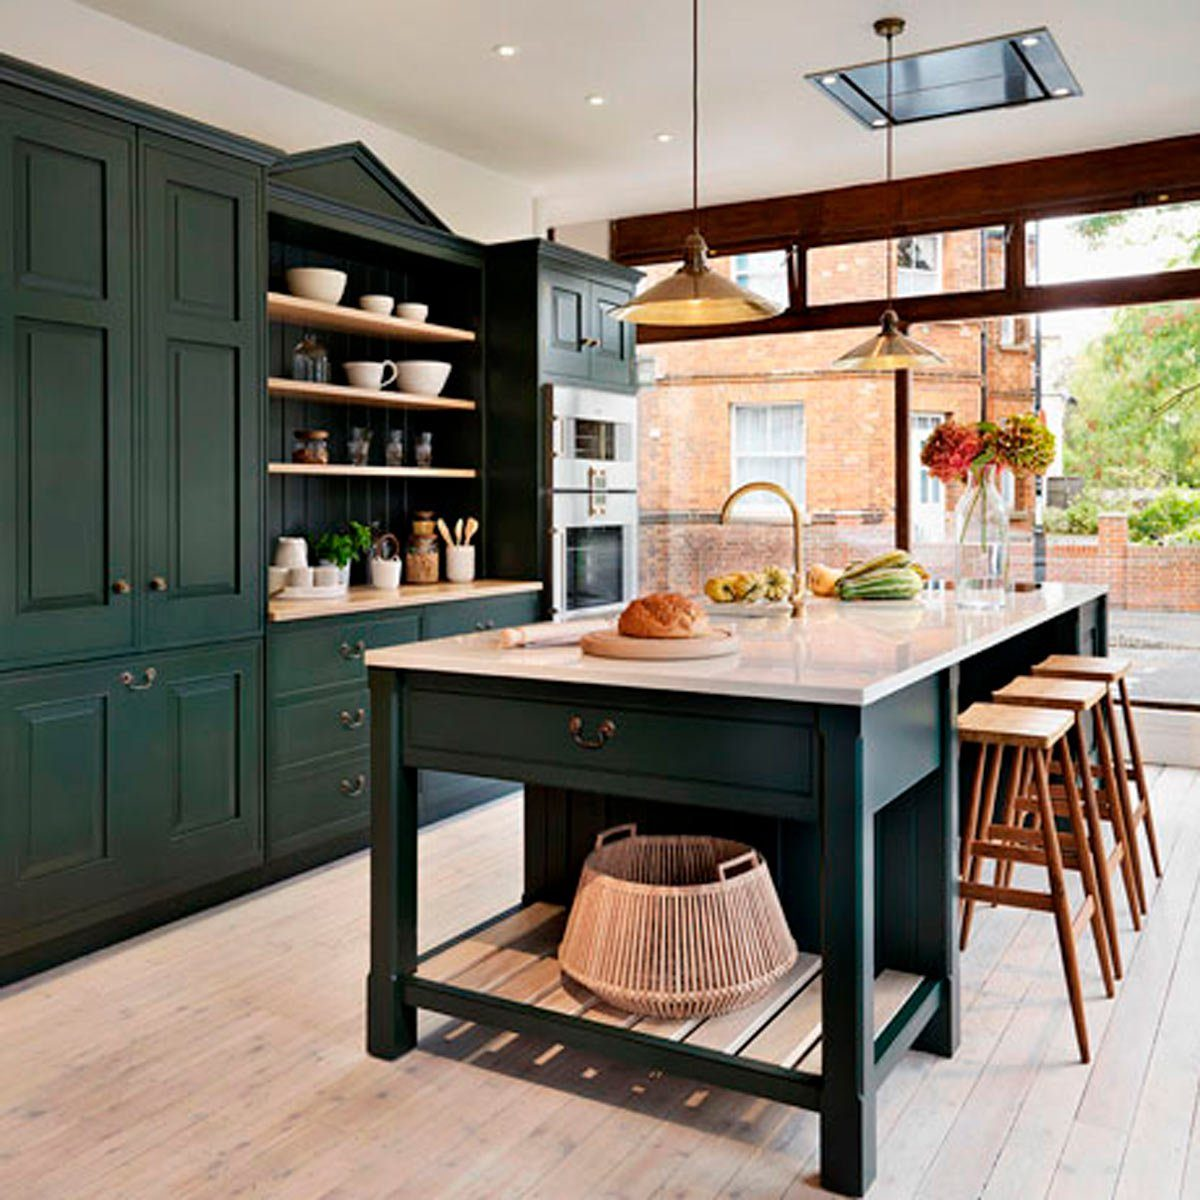 13 Stunning Dark Kitchen Cabinet Ideas Family Handyman